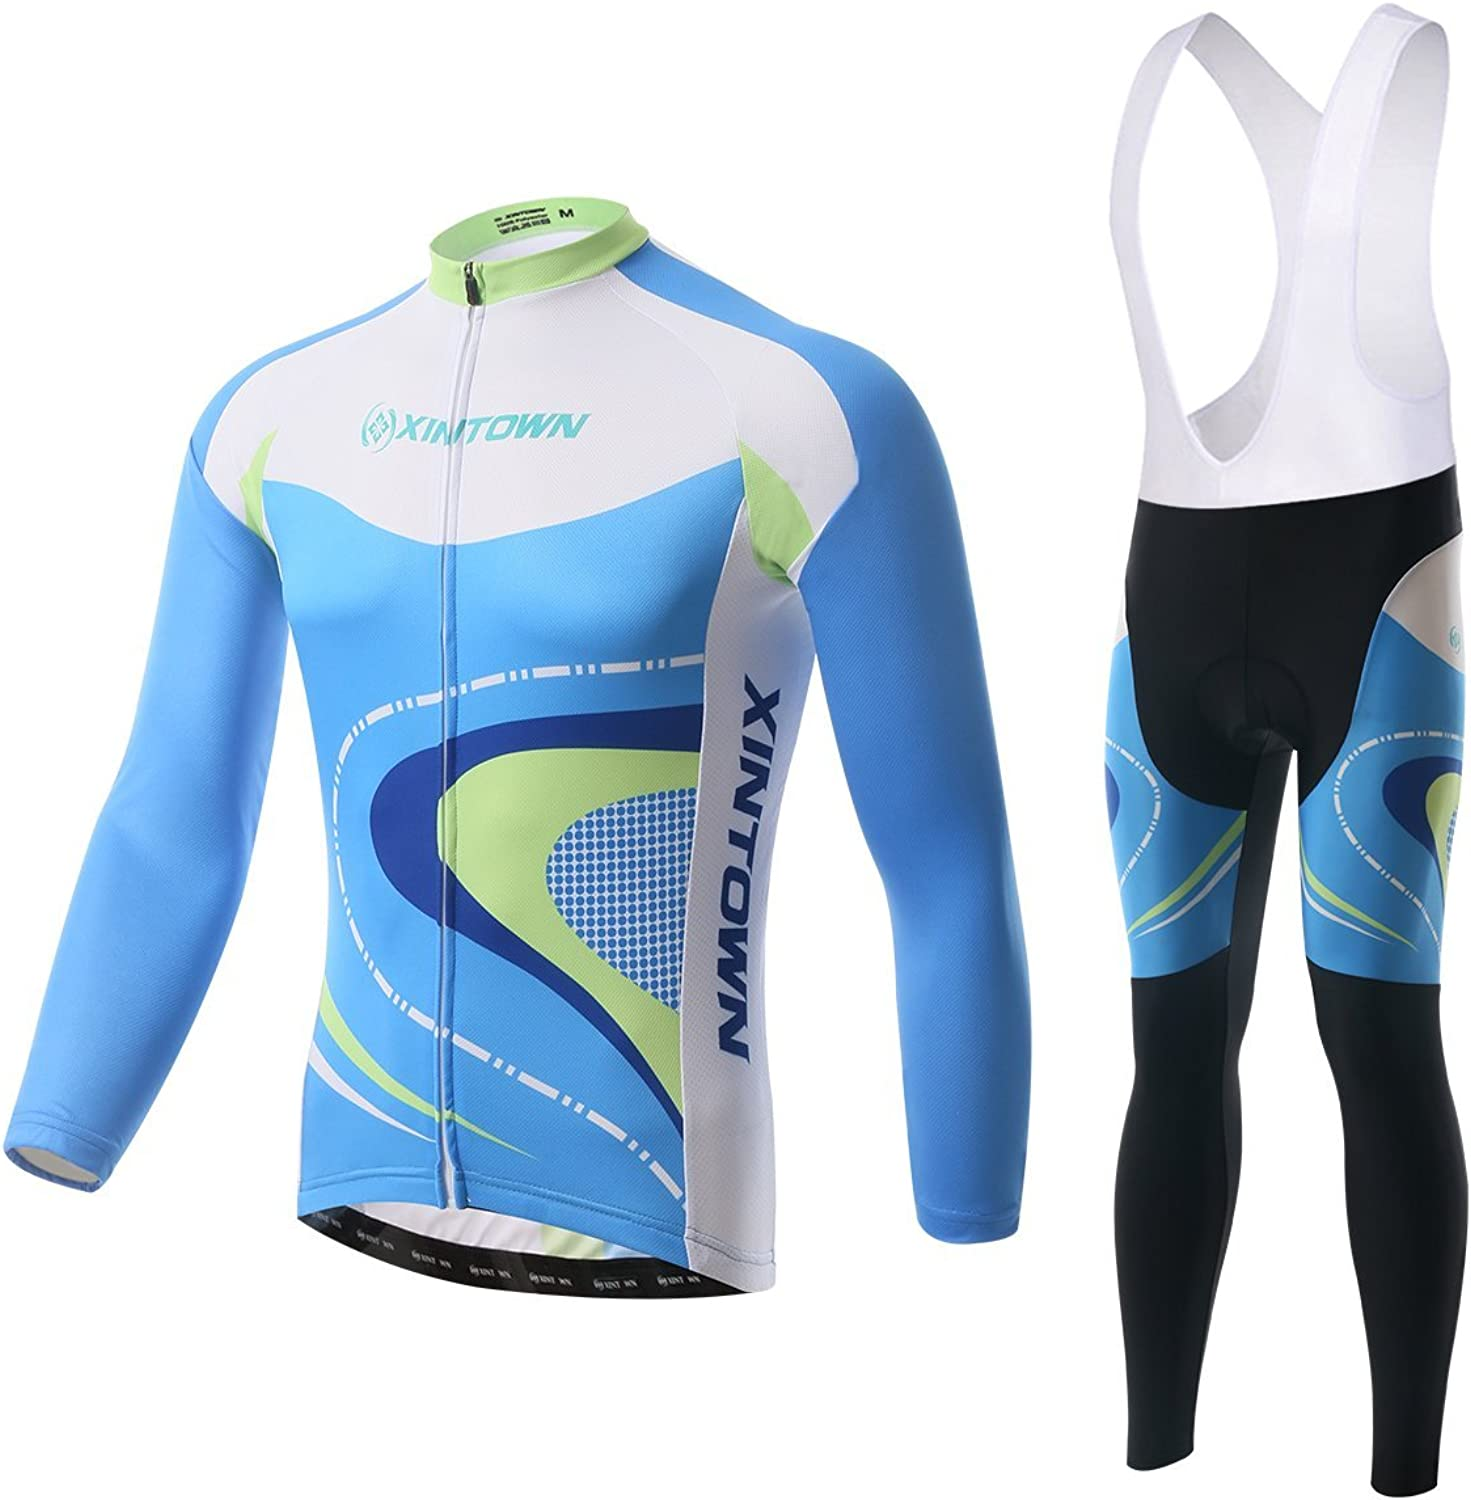 BESYL Unisex Printed HighPerformance Mesh Cycling Clothing Suit, Breathable Long Sleeve Cycling Jersey and Bib Padded Pants Kit for Bicycle Bike Riding Biker (Skybluee White Light Green Darkbluee)